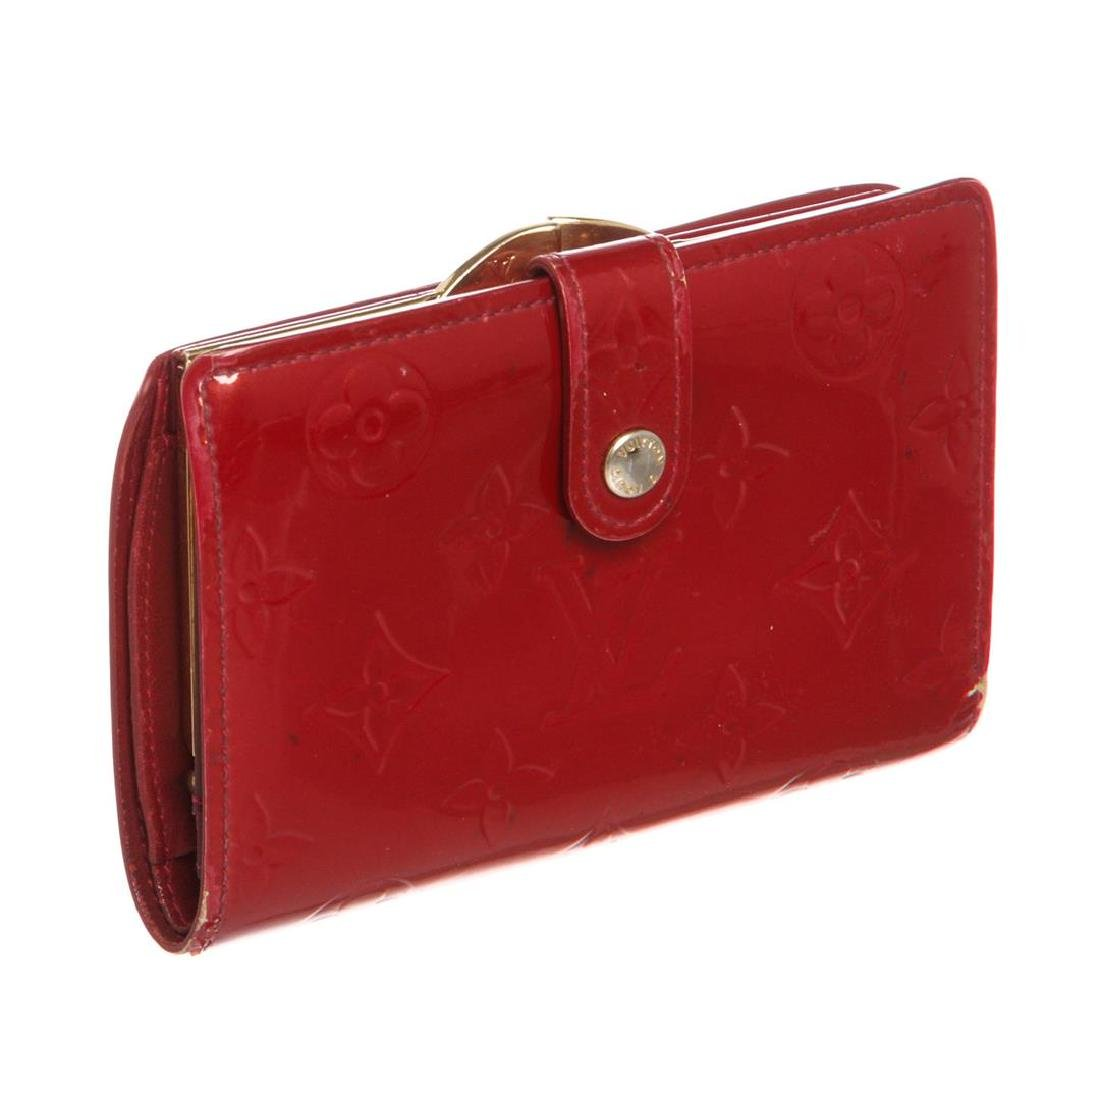 Louis Vuitton Red Vernis Monogram French Wallet - 2